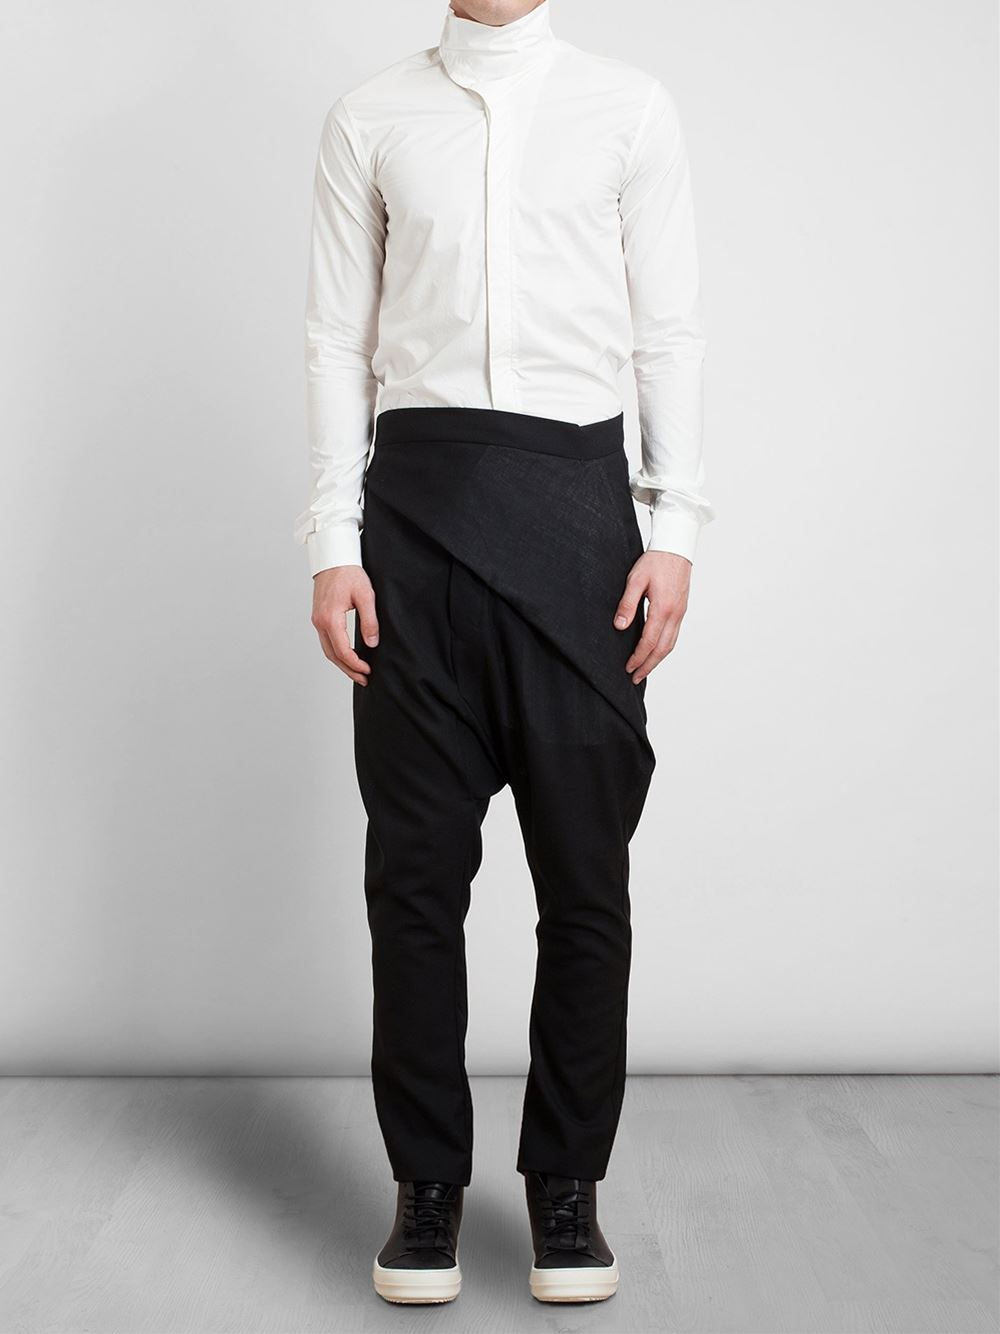 Rick Owens Drop Crotch Trousers, luxury menswear